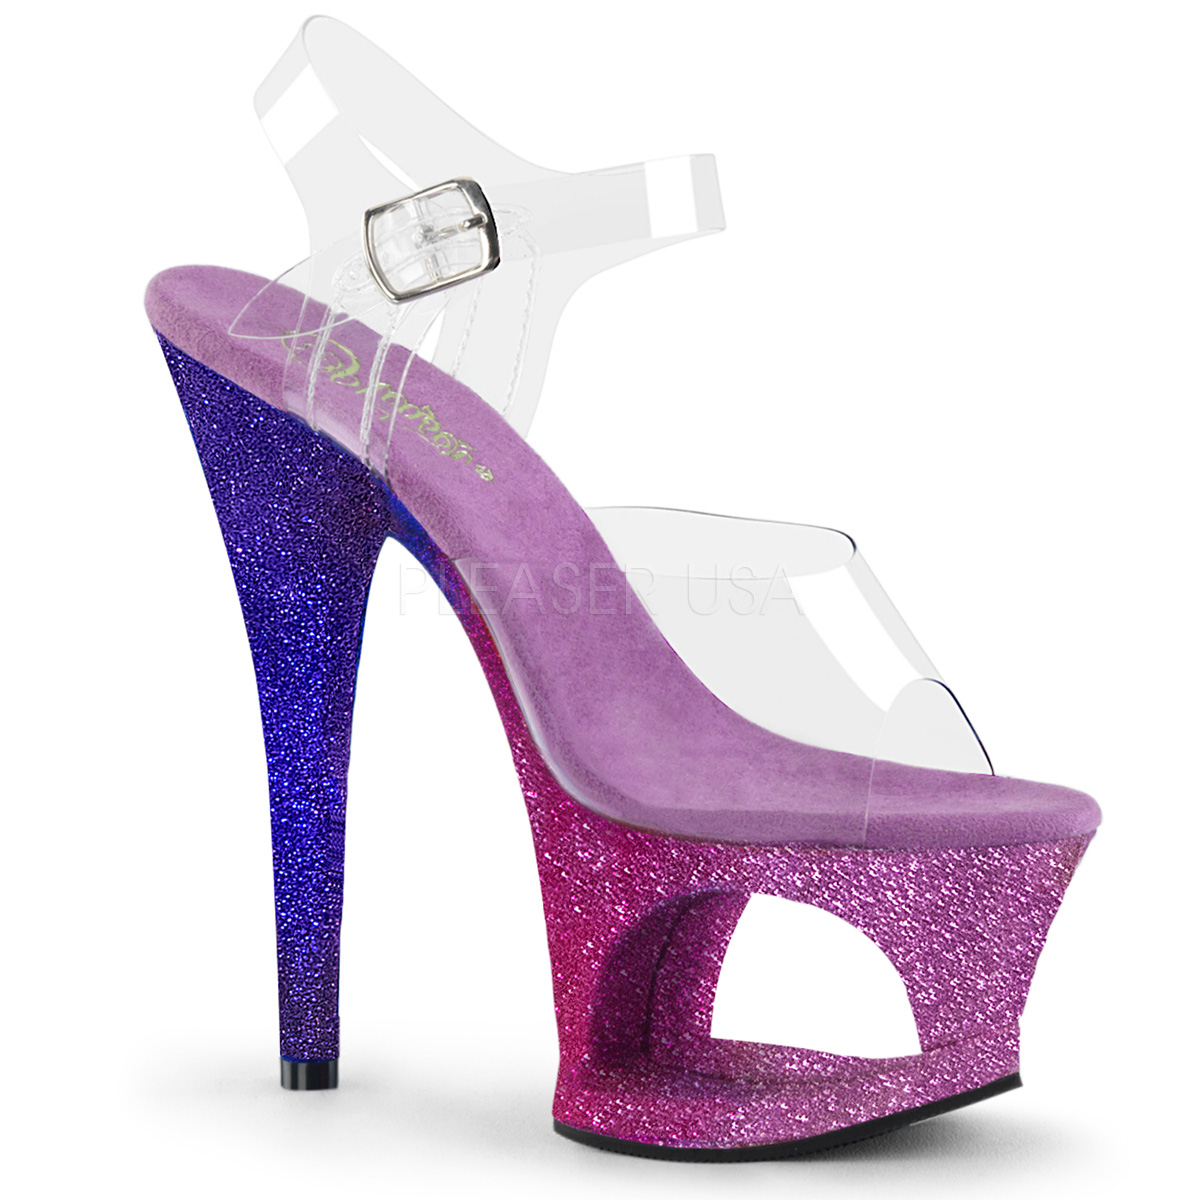 812154e14809 Lavender-glitter-18-cm-Pleaser-MOON-708OMBRE-Pole-dancing-high-heels-shoes -10856 0.jpg